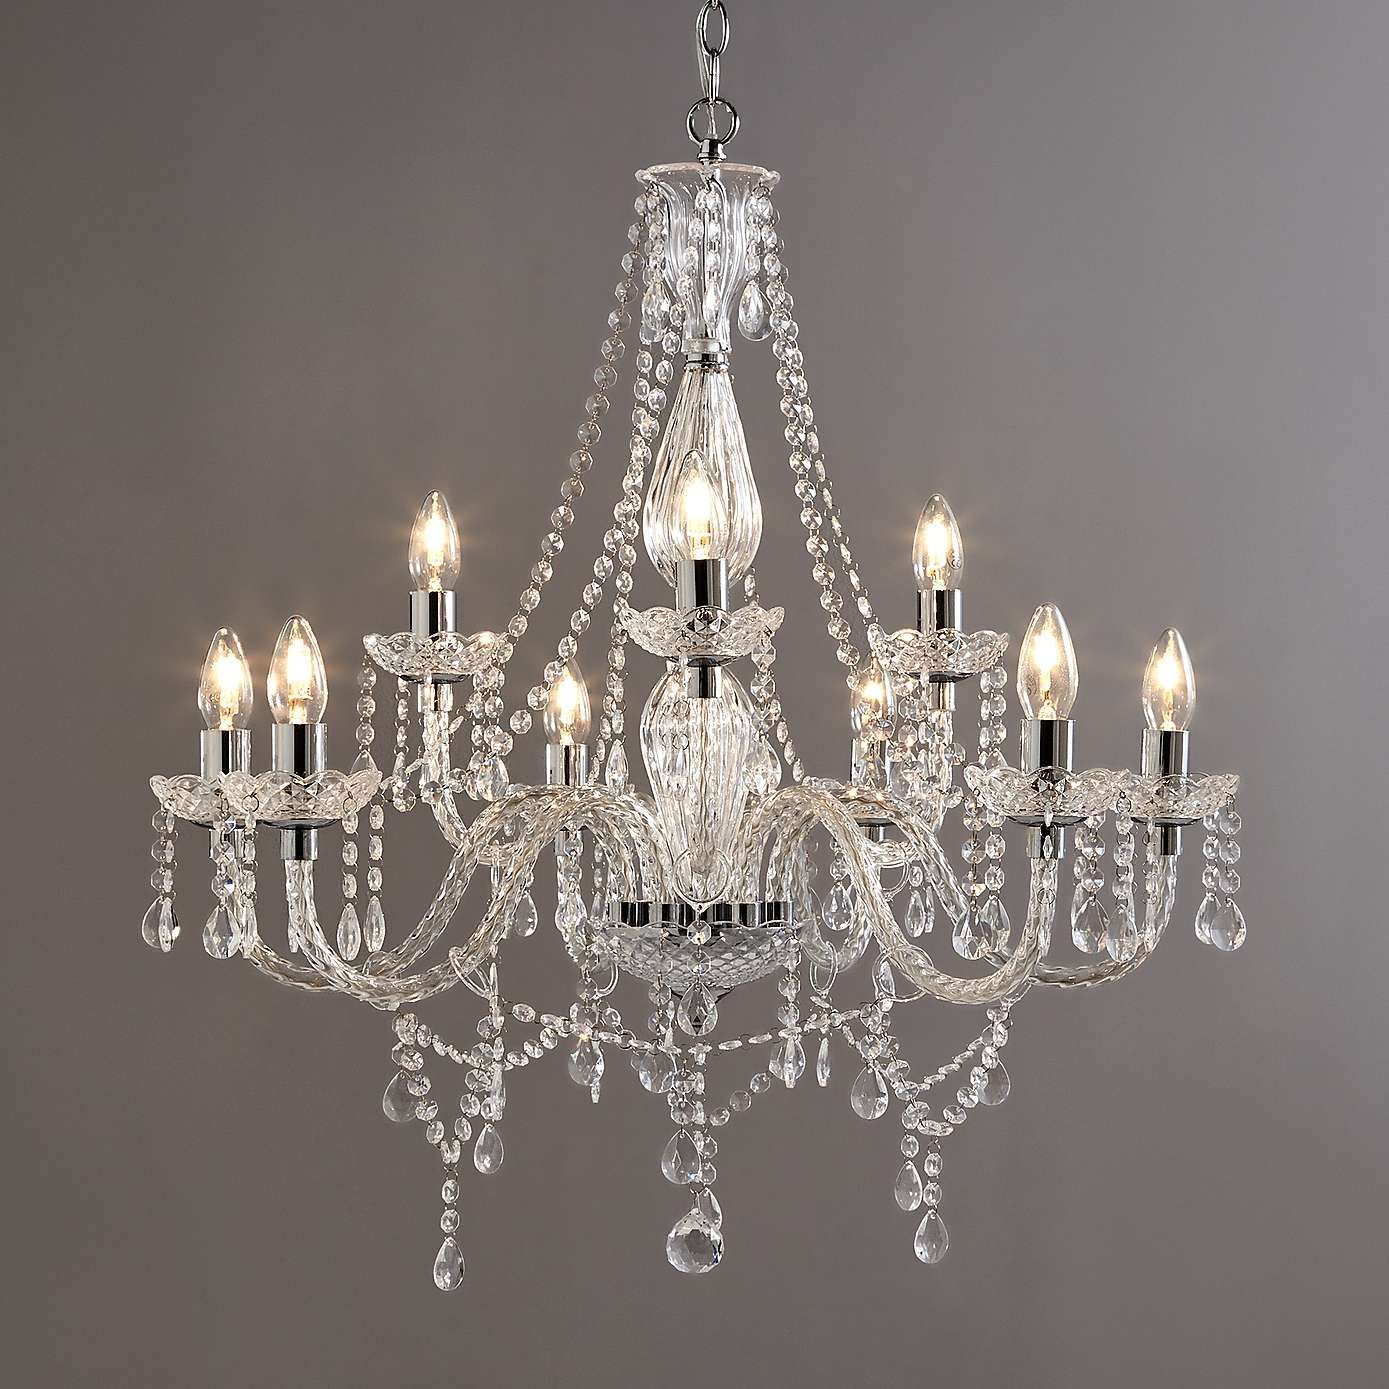 crystal chandelier dunelm # 3